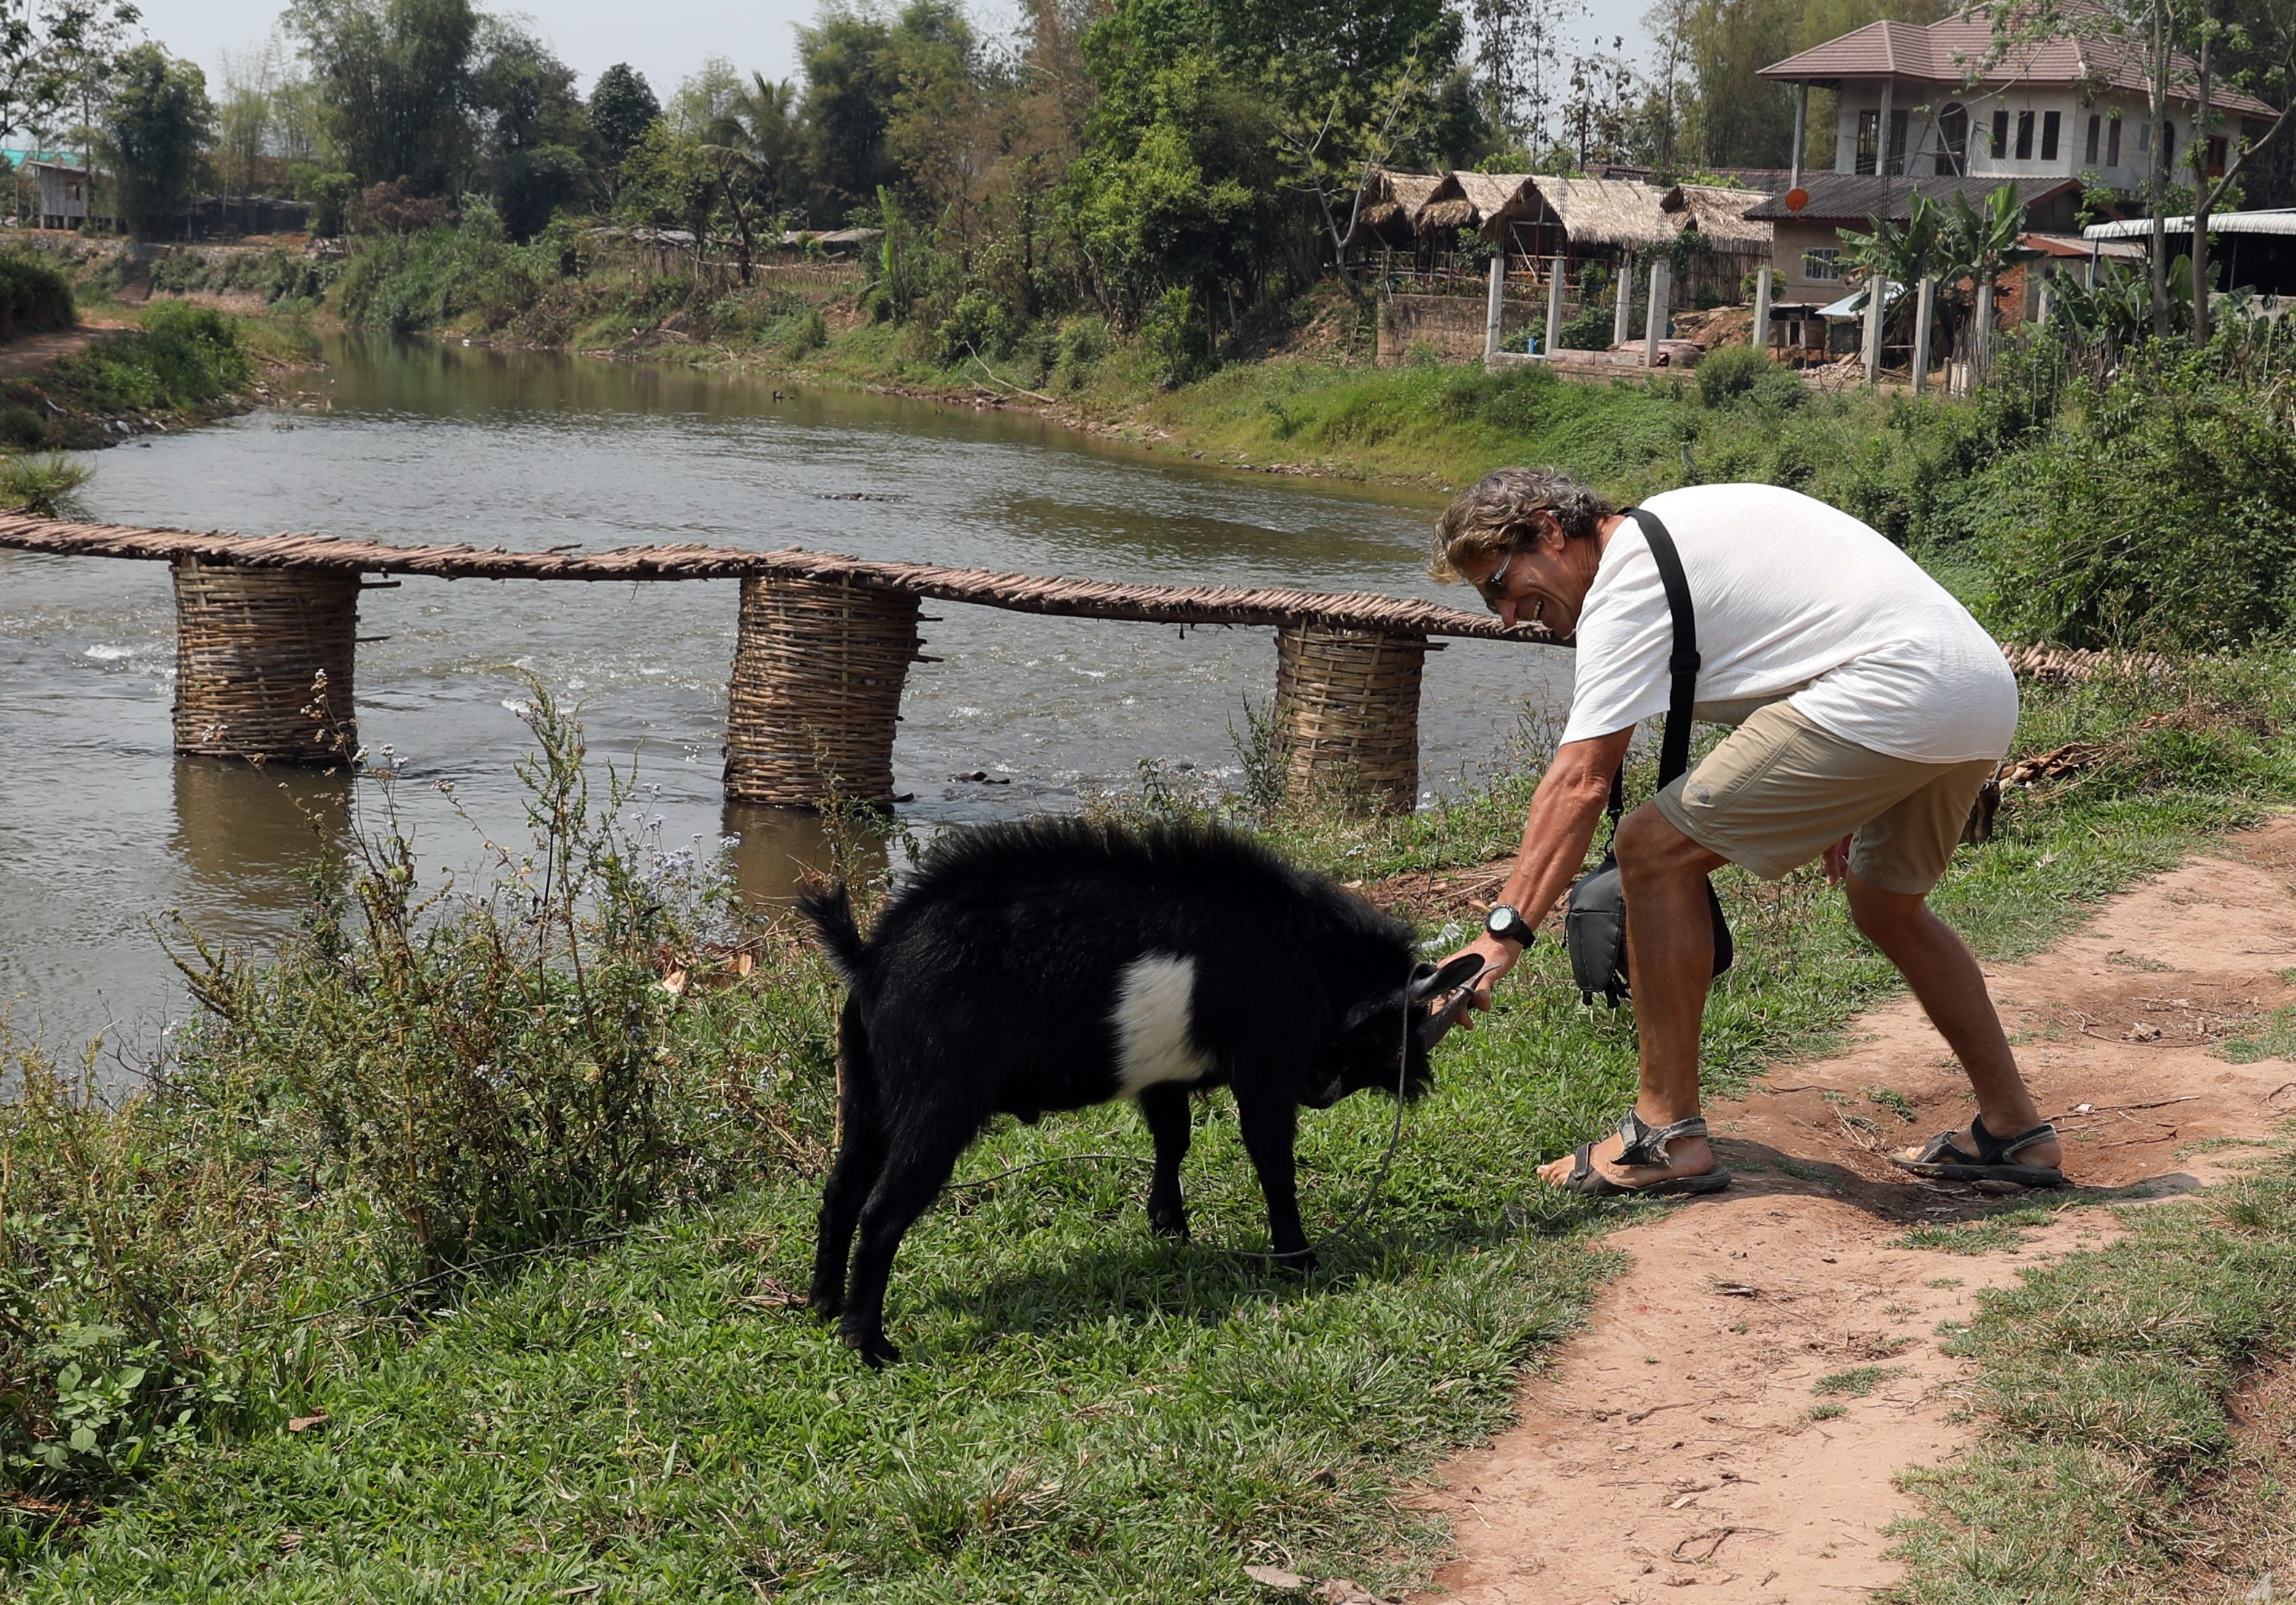 Richard teasing a goat